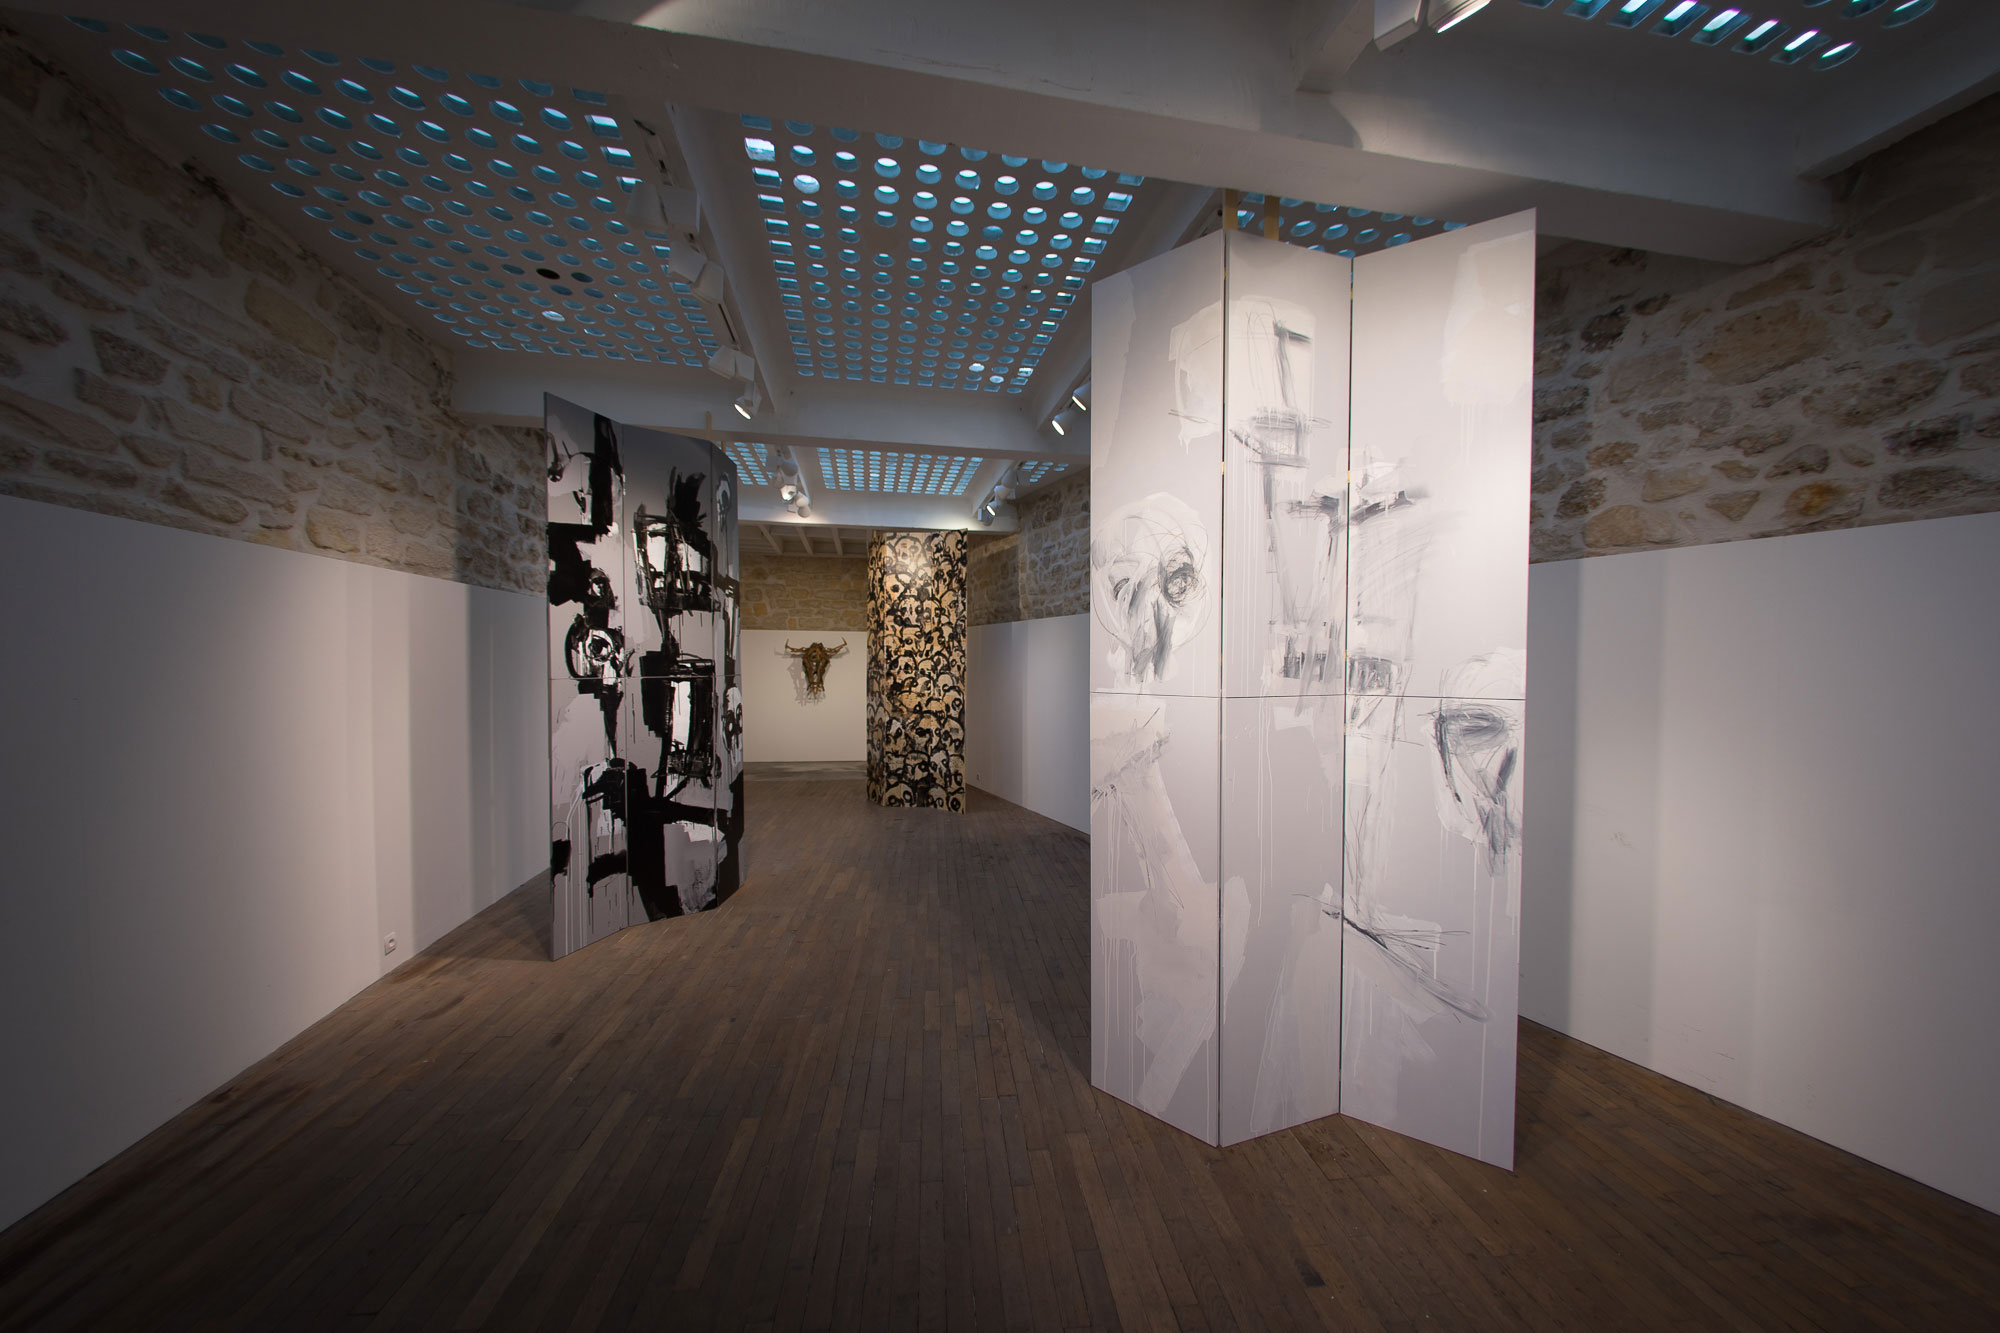 Salle-labyrinthe_Raphael-Thierry_Galerie-Ariane-CY